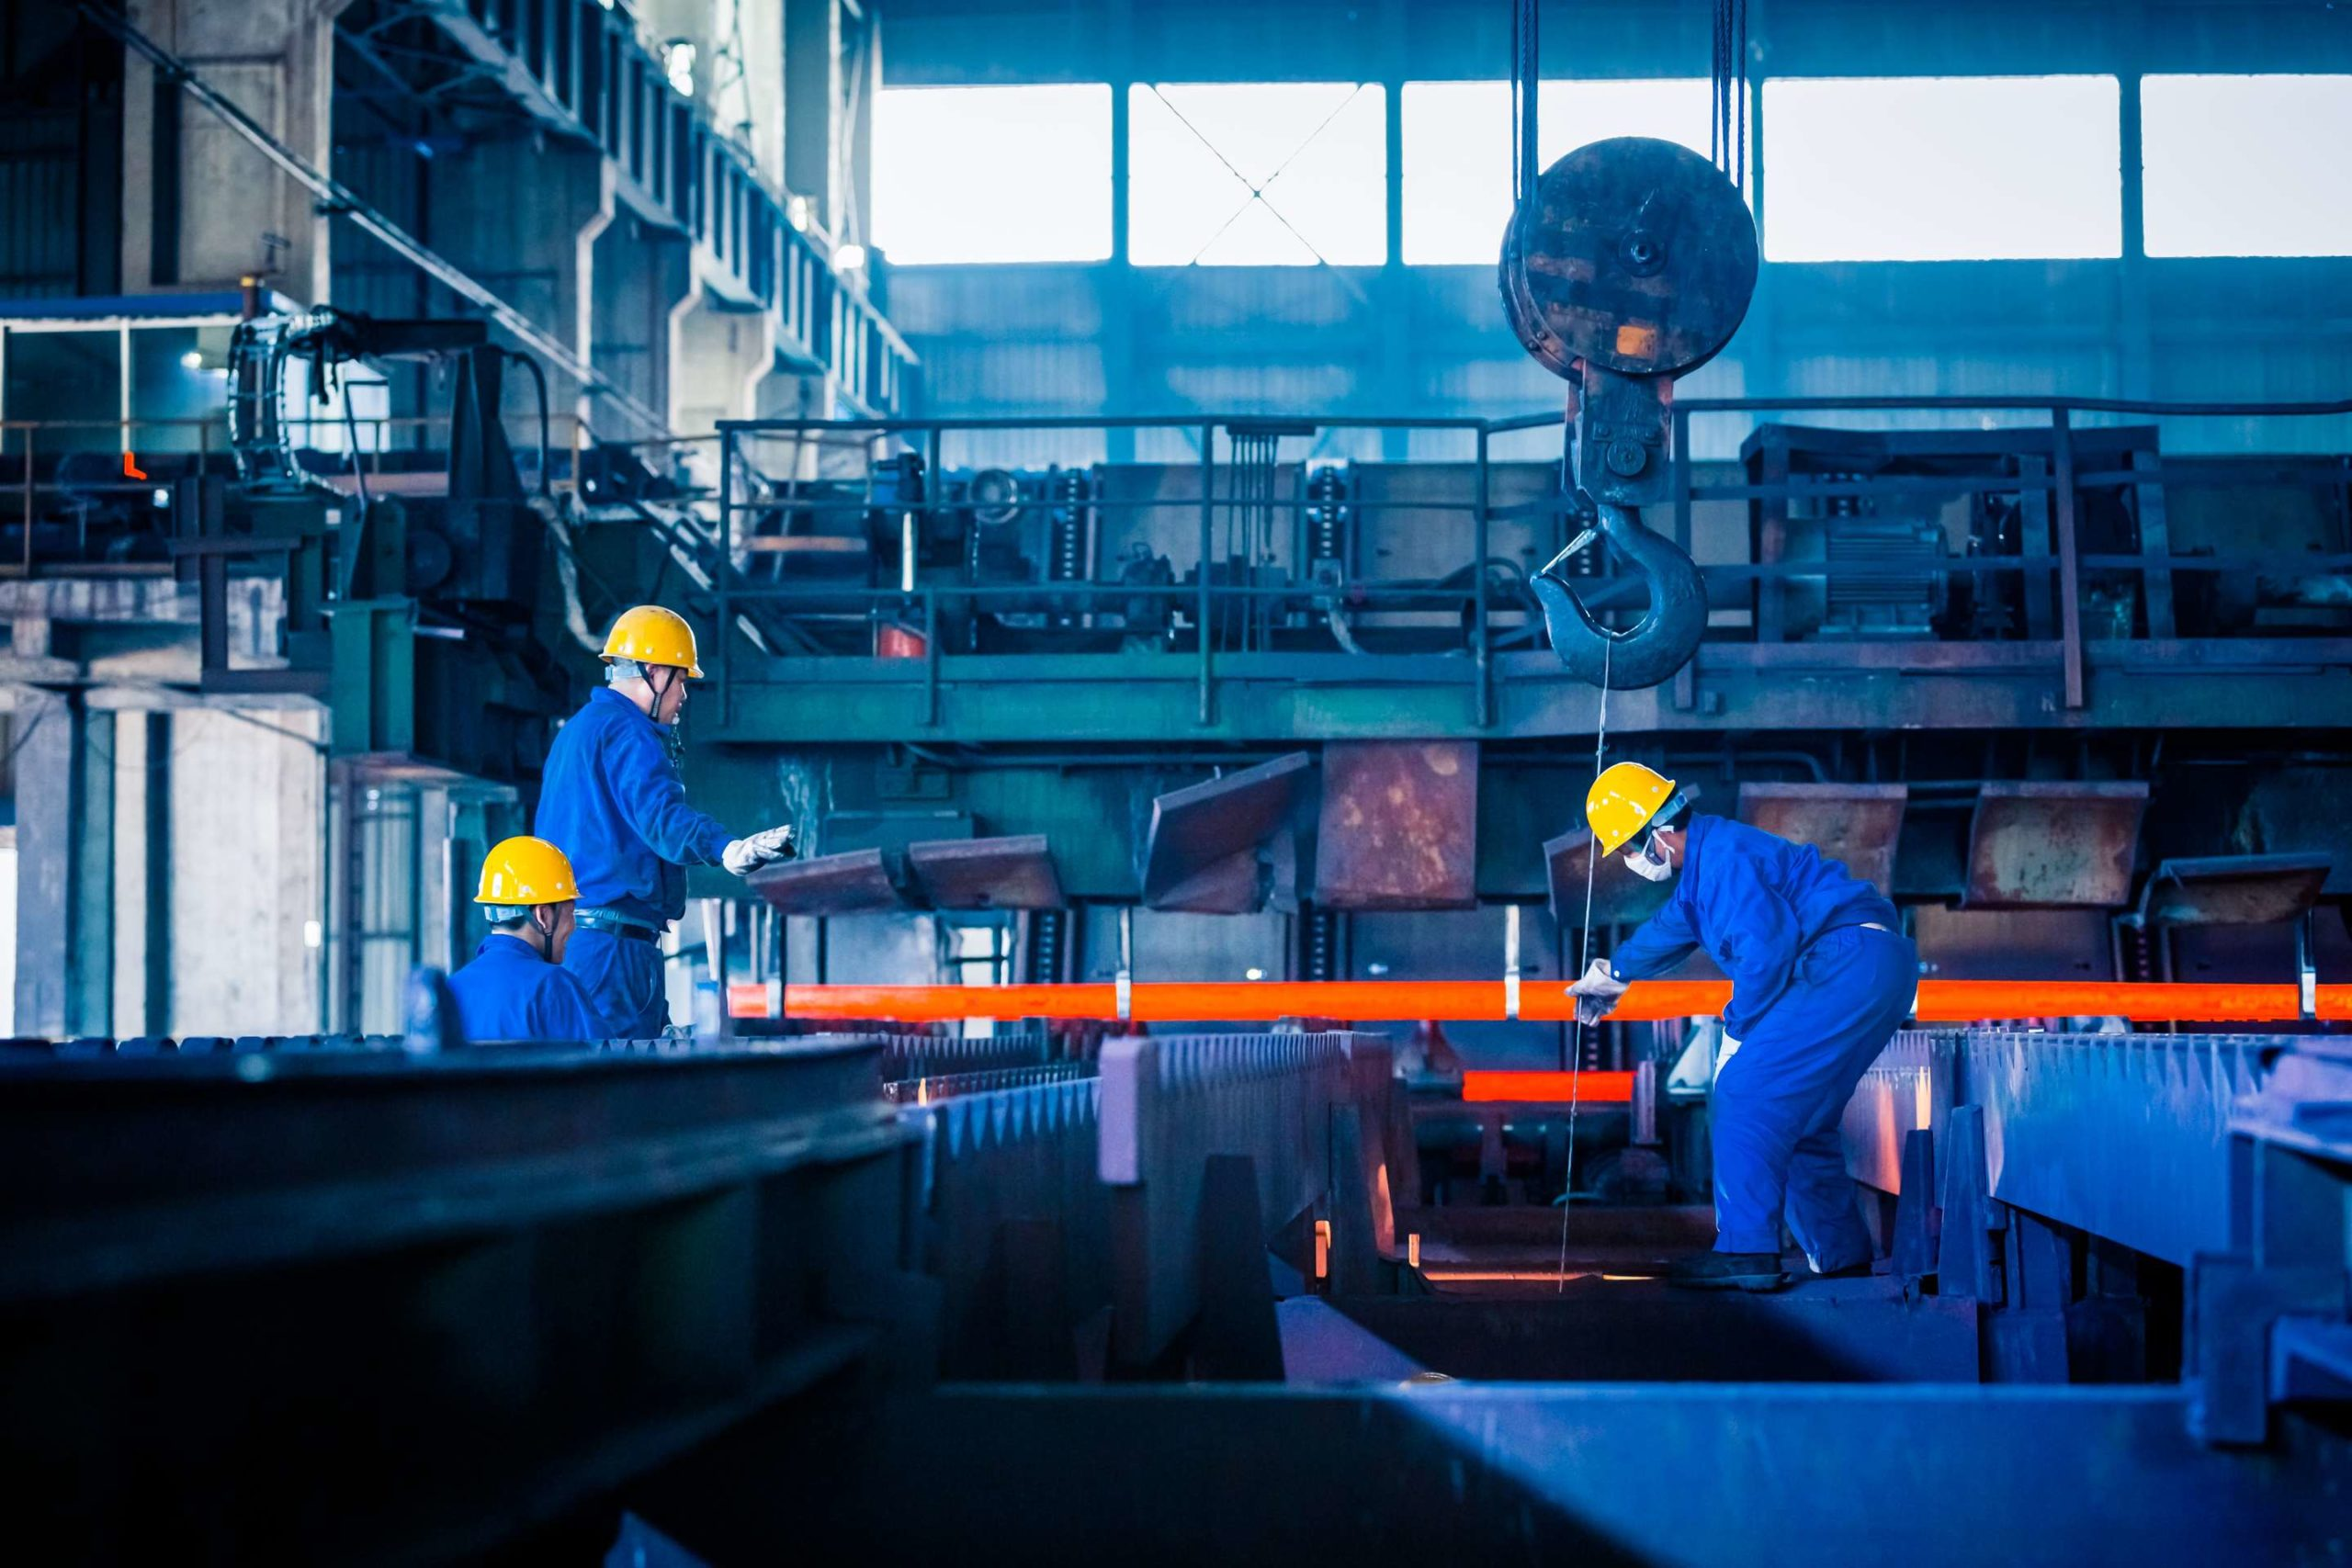 interior-view-steel-factory-min_50-scaled.jpg